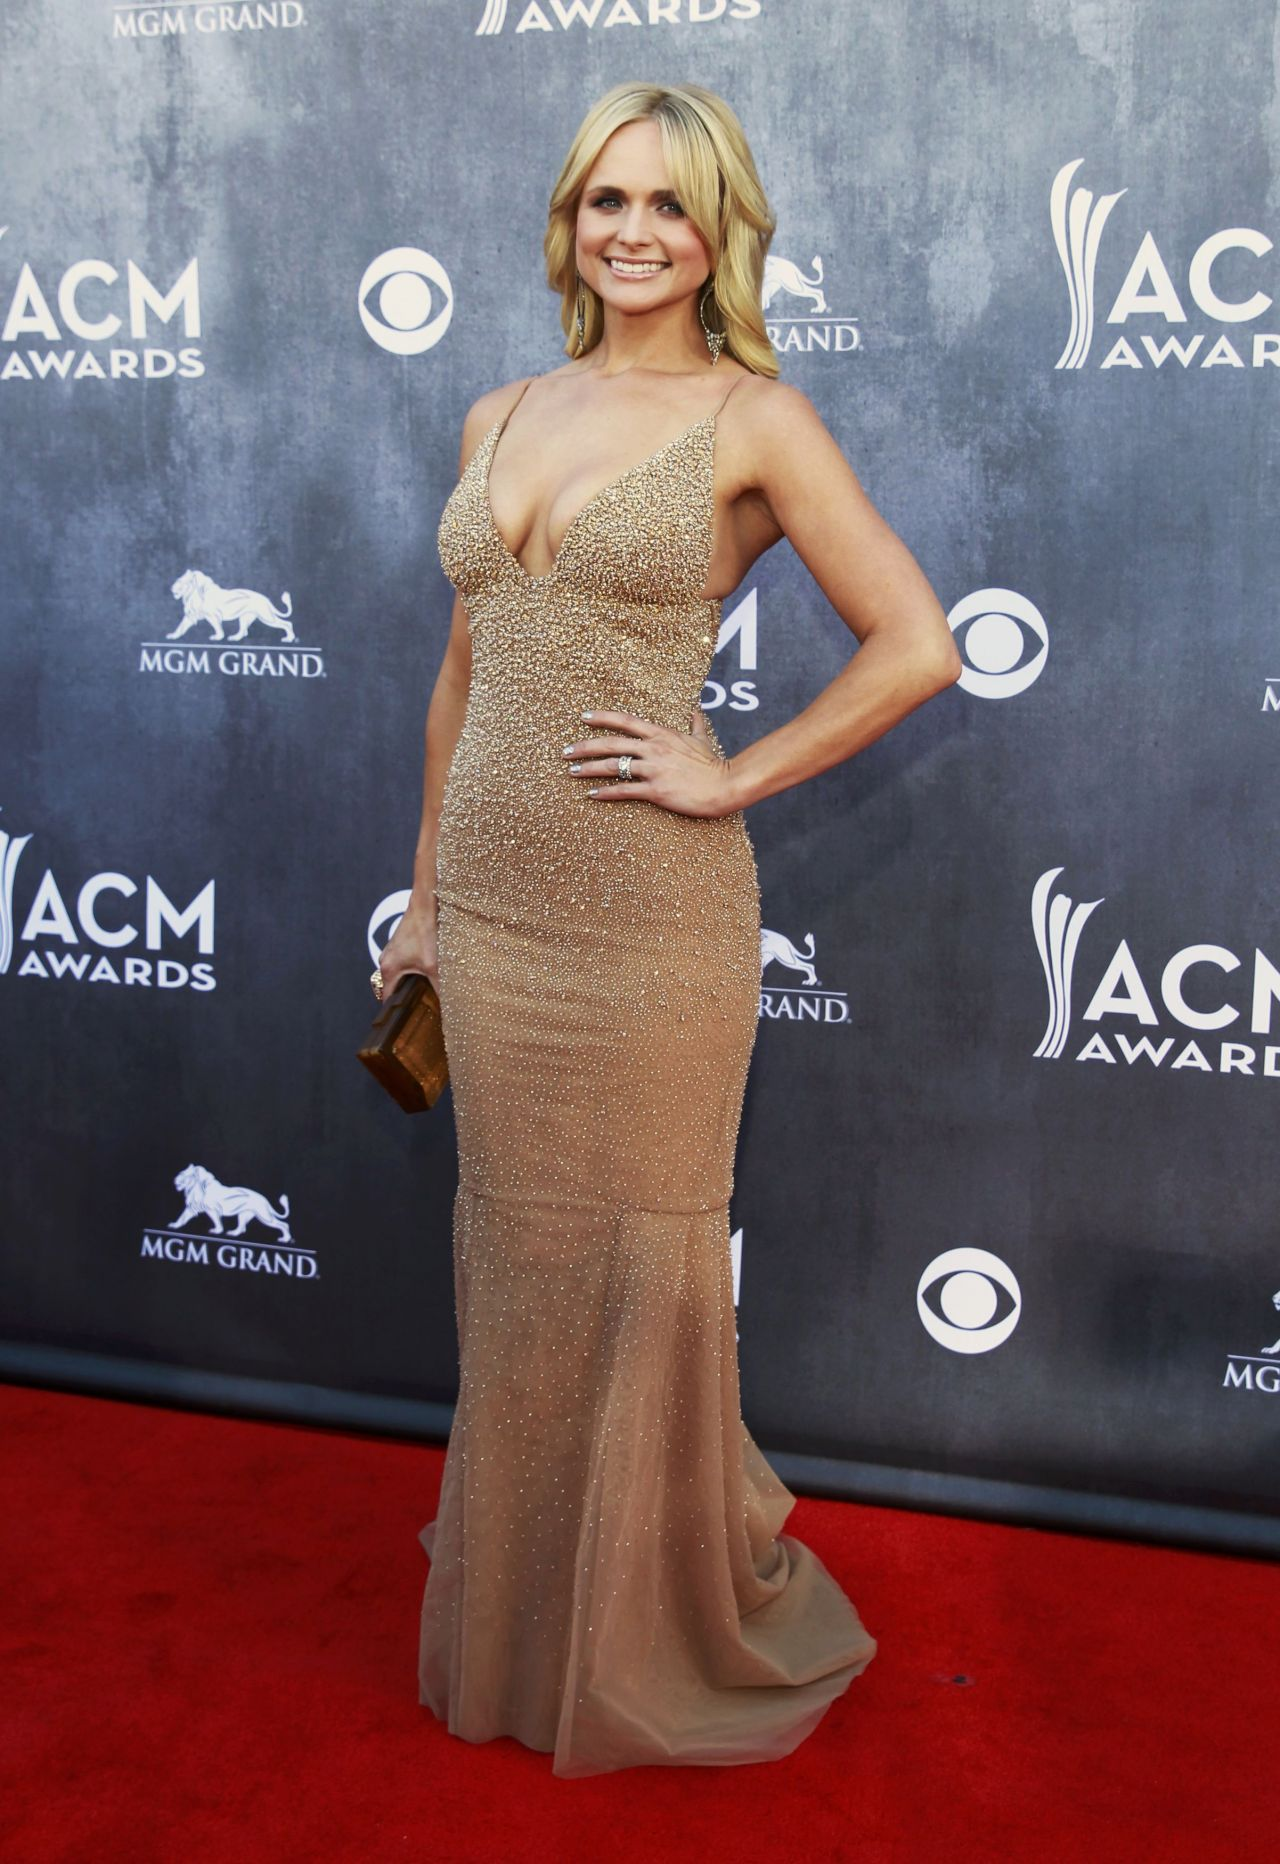 Miranda Lambert Wearing Randi Rahm Gown Academy Of Country Music Awards April 6 2017